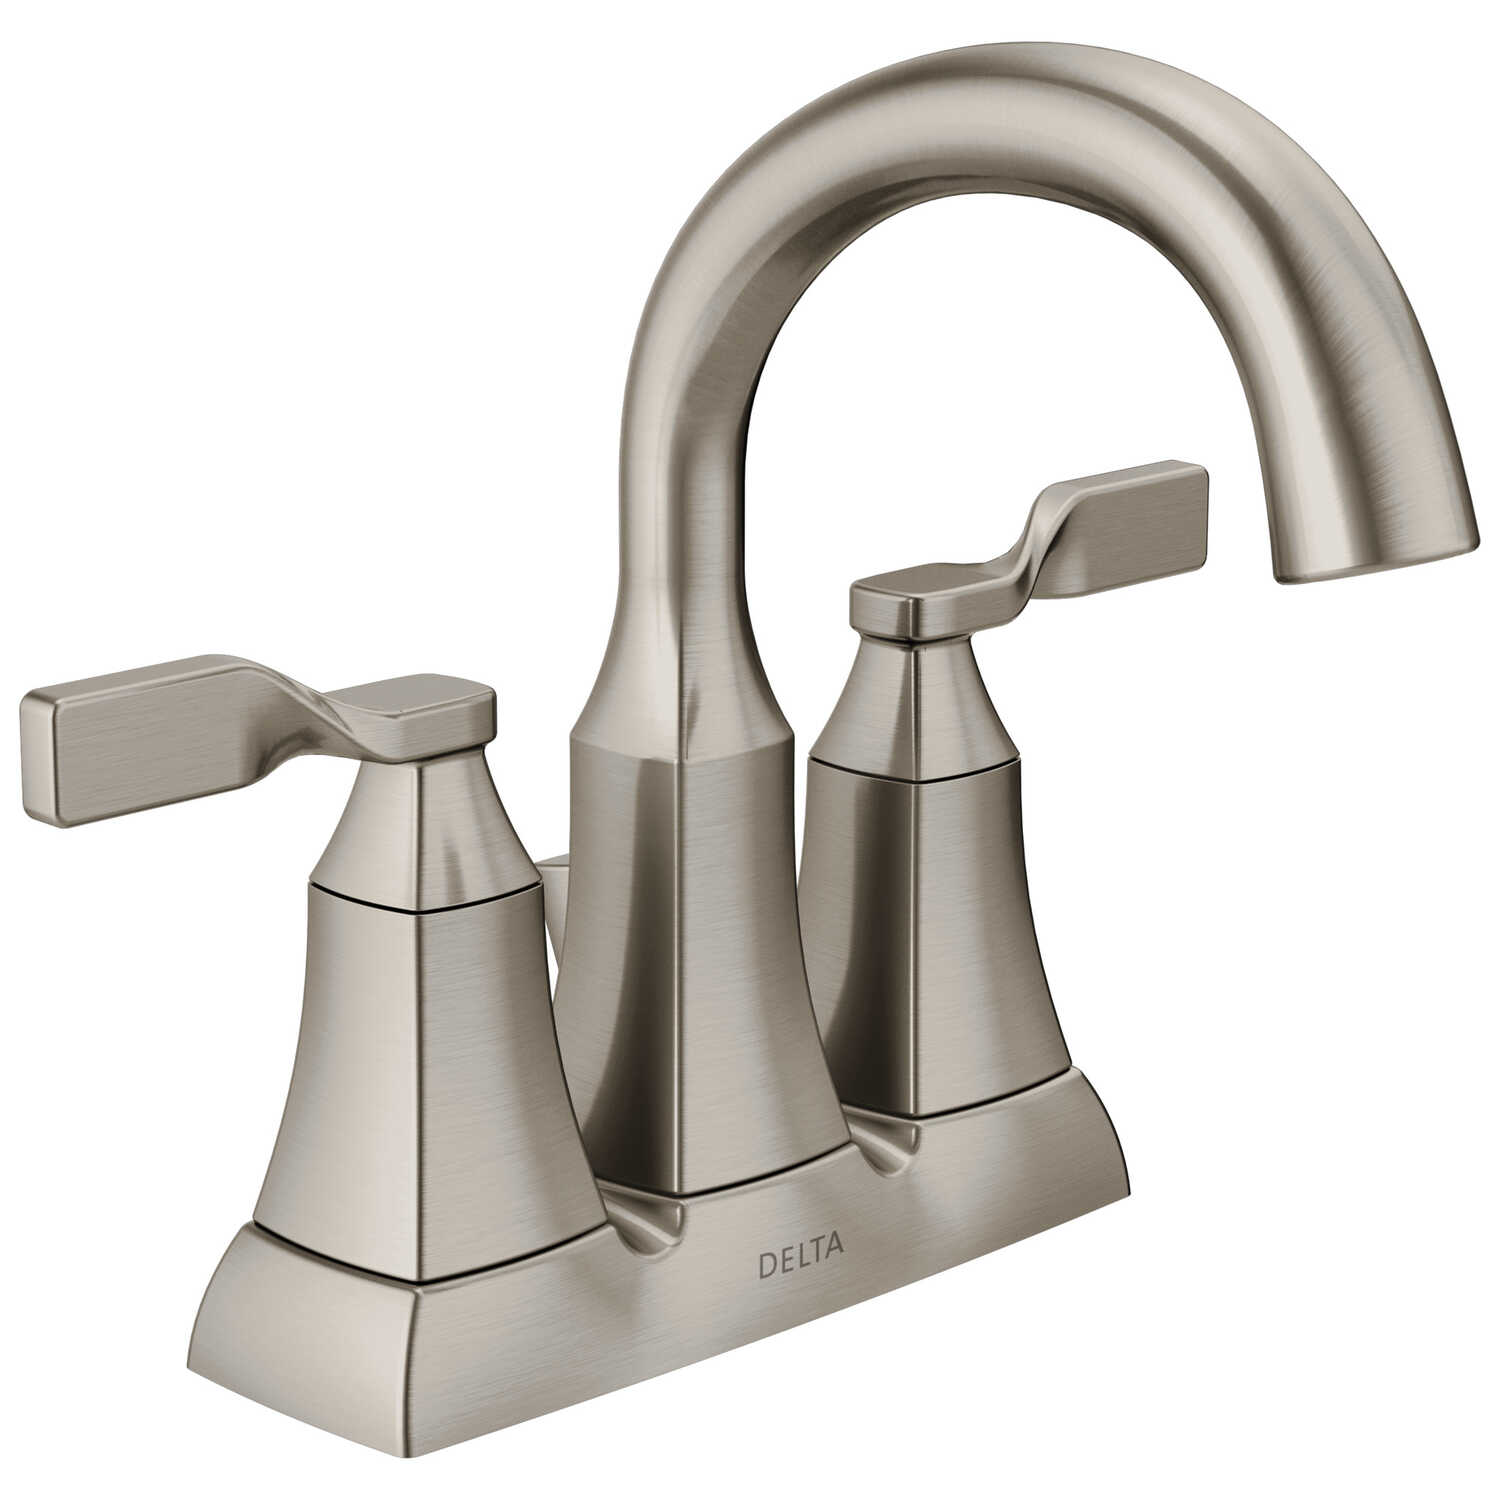 Delta  Sawyer  Two Handle  Lavatory Faucet  4 in. Spotshield Brushed Nickel